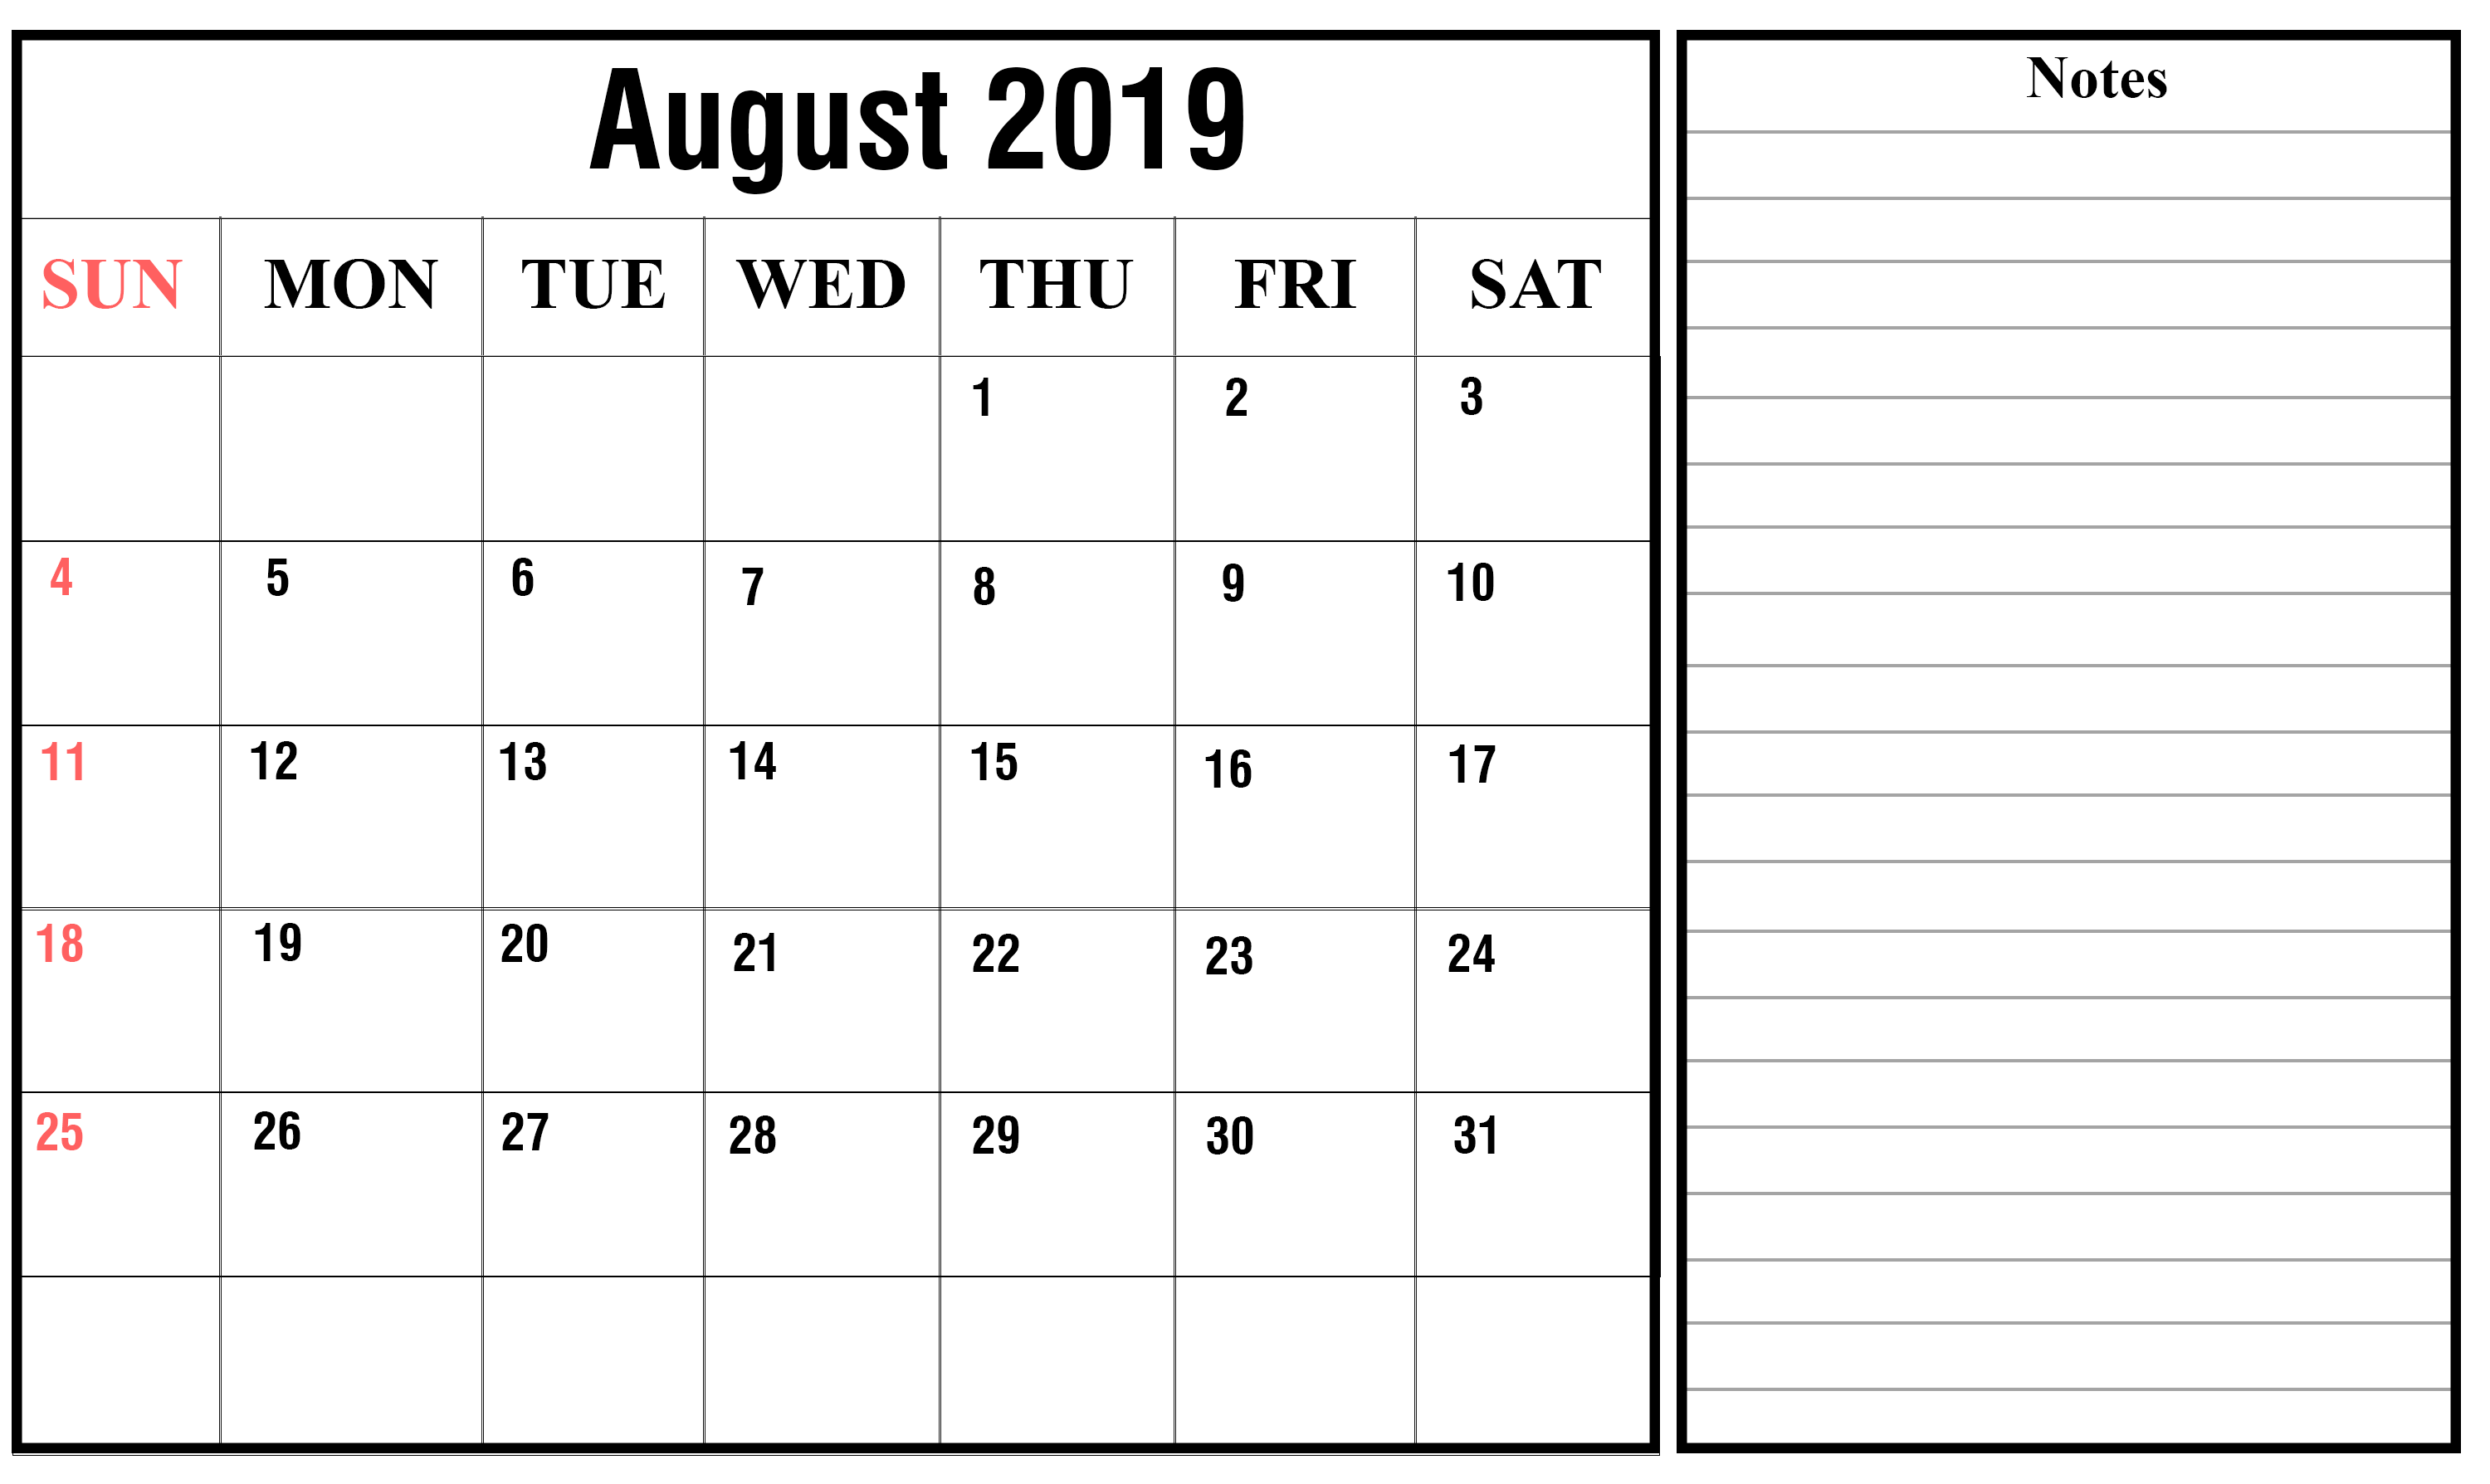 Fillable August 2019 Calendar